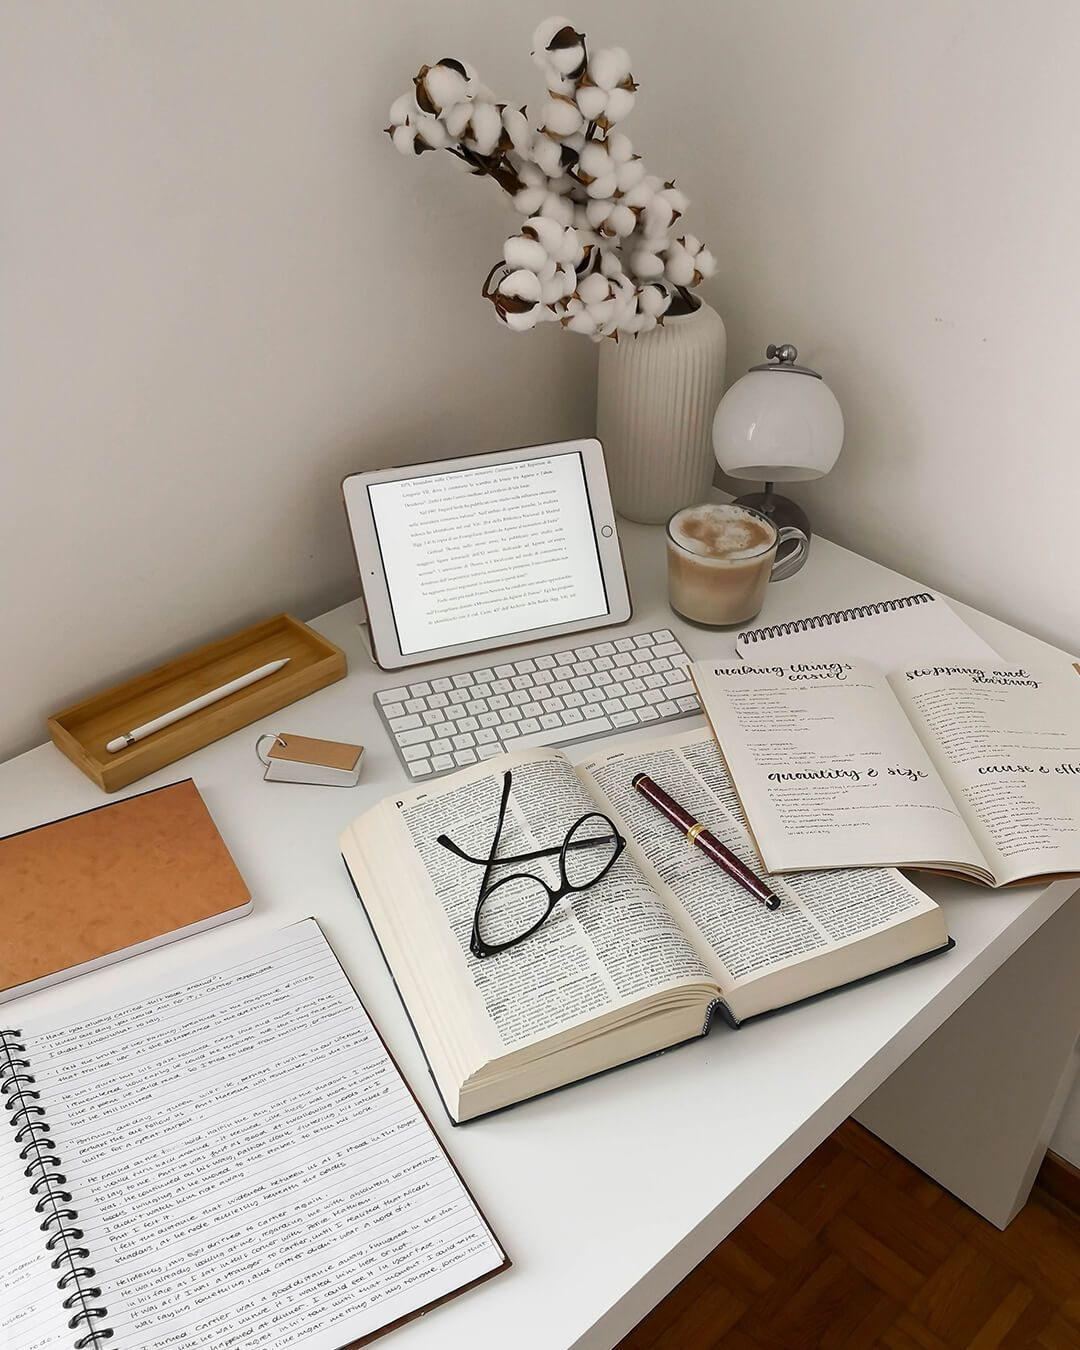 Liv's daily routine involves a lot of reading, so she plans it like any other work-related task